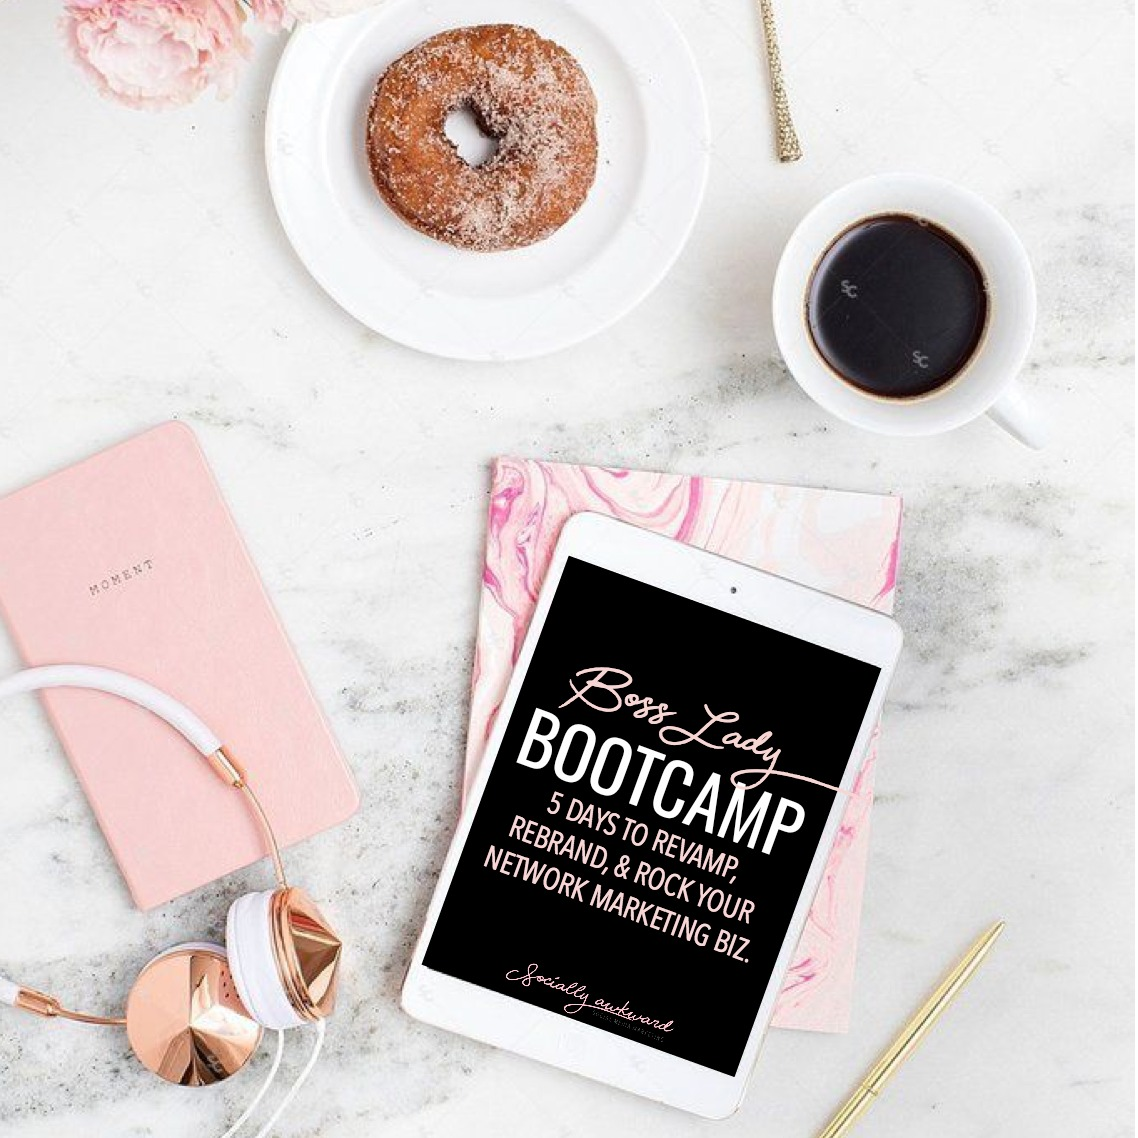 BOSS LADY BOOT CAMP  - A STREAMLINED eCOURSE DESIGNED TO REVAMP, REBRAND, AND ROCK YOUR DIRECT SALES OR NETWORK MARKETING BUSINESS ONLINE.